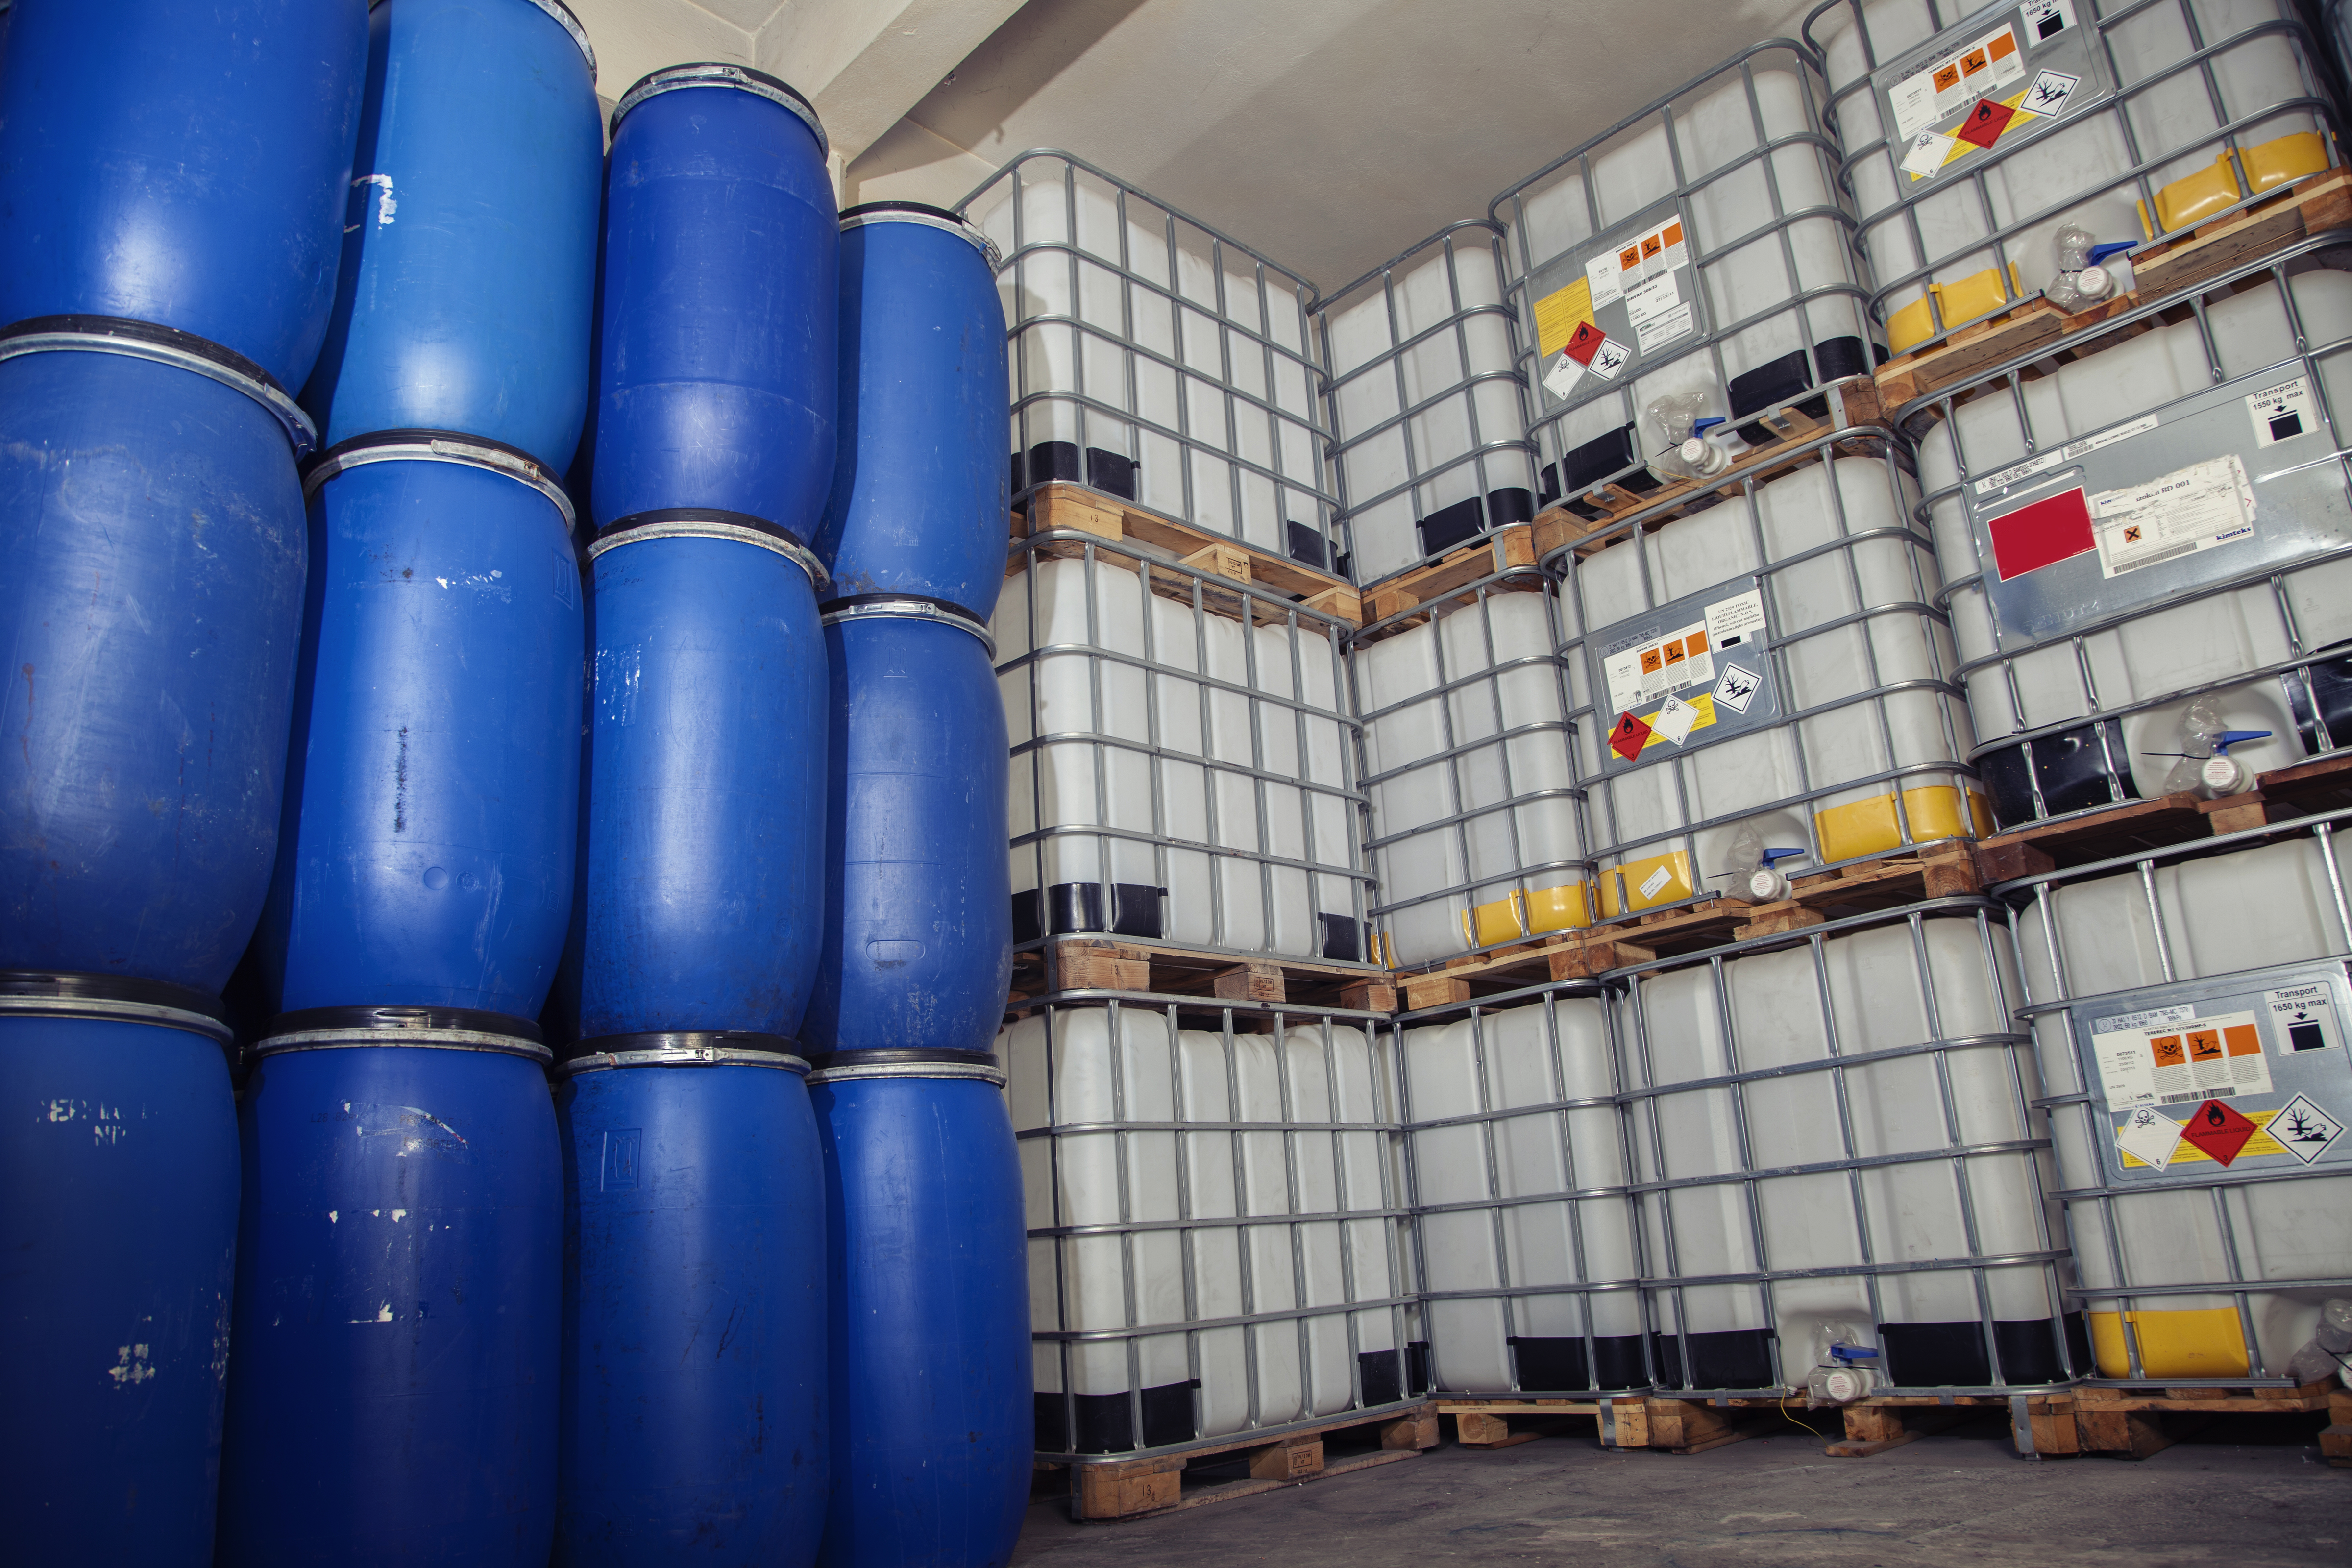 containers and tubs holding dangerous goods and chemicals with WHMIS symbols on stickers.